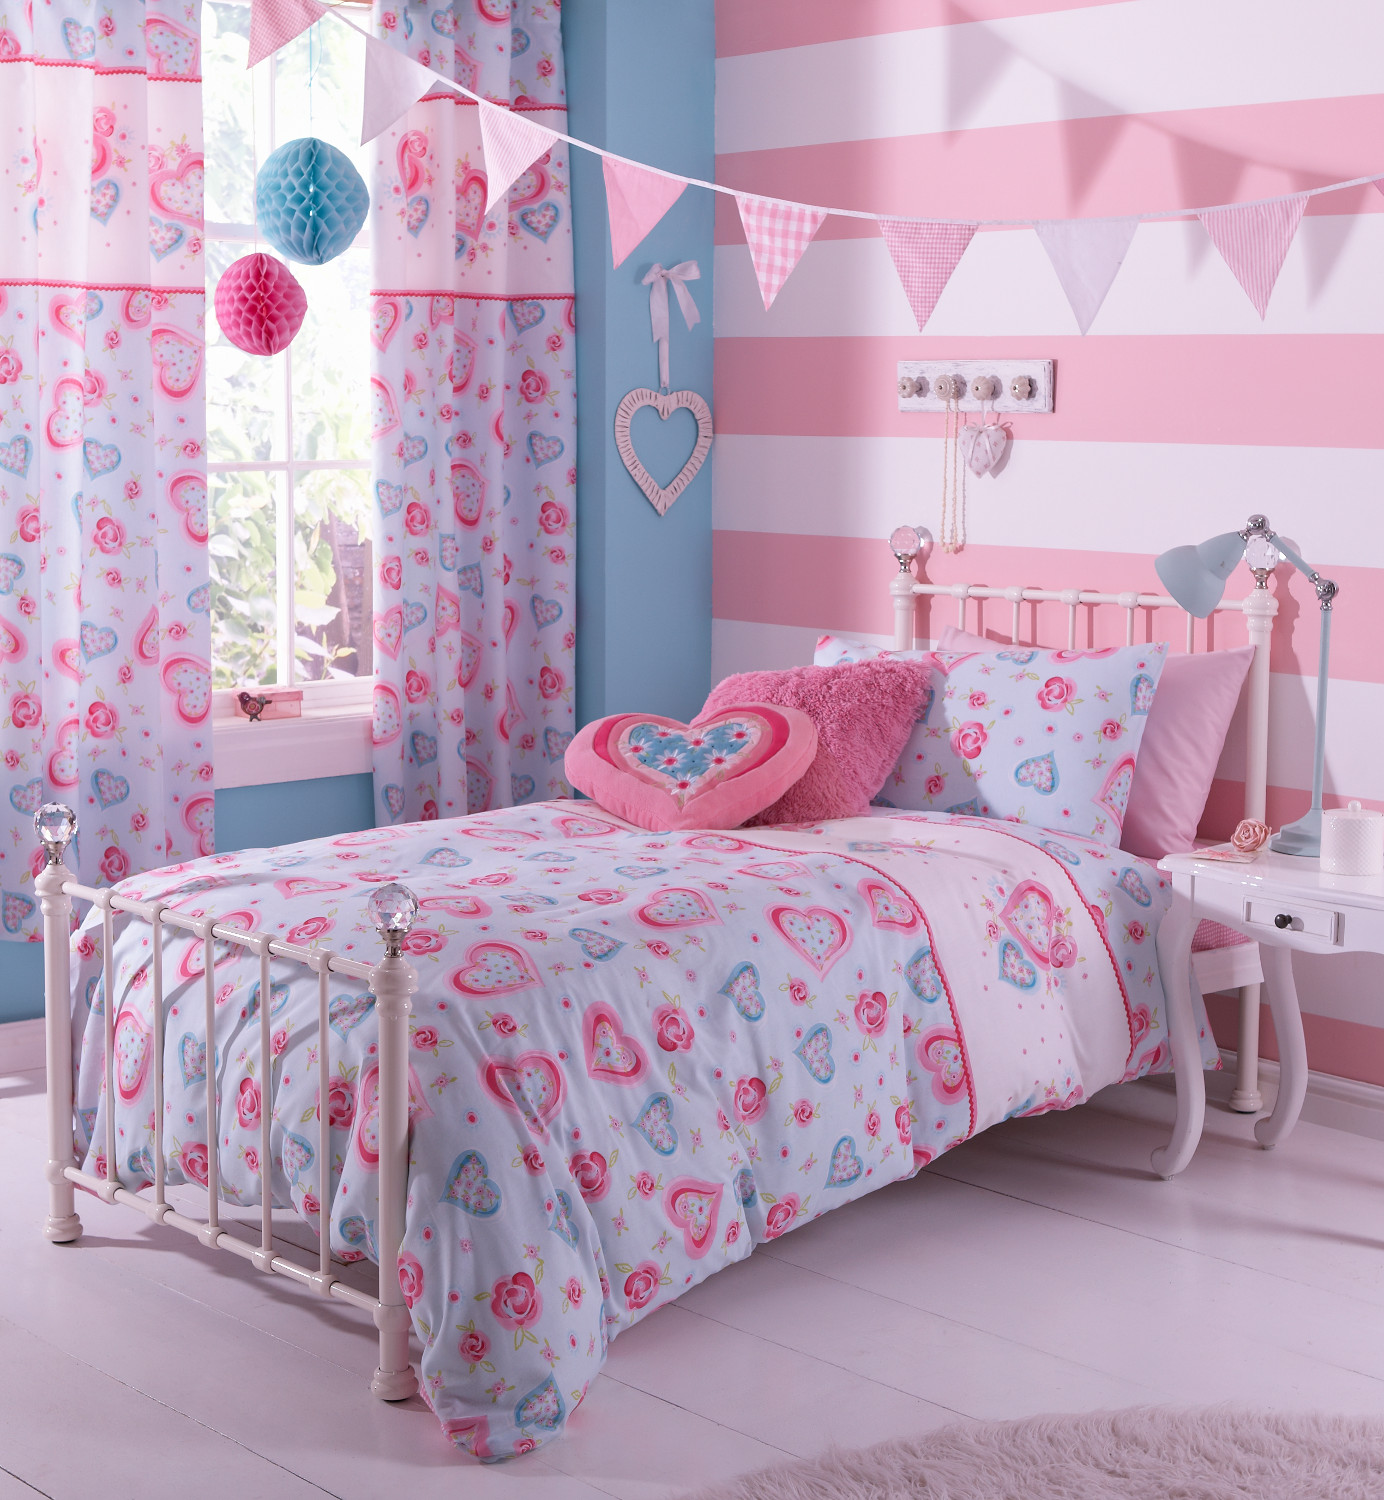 Pretty Bed Covers Hearts And Flowers Duvet Set Catherine Lansfield Polycotton